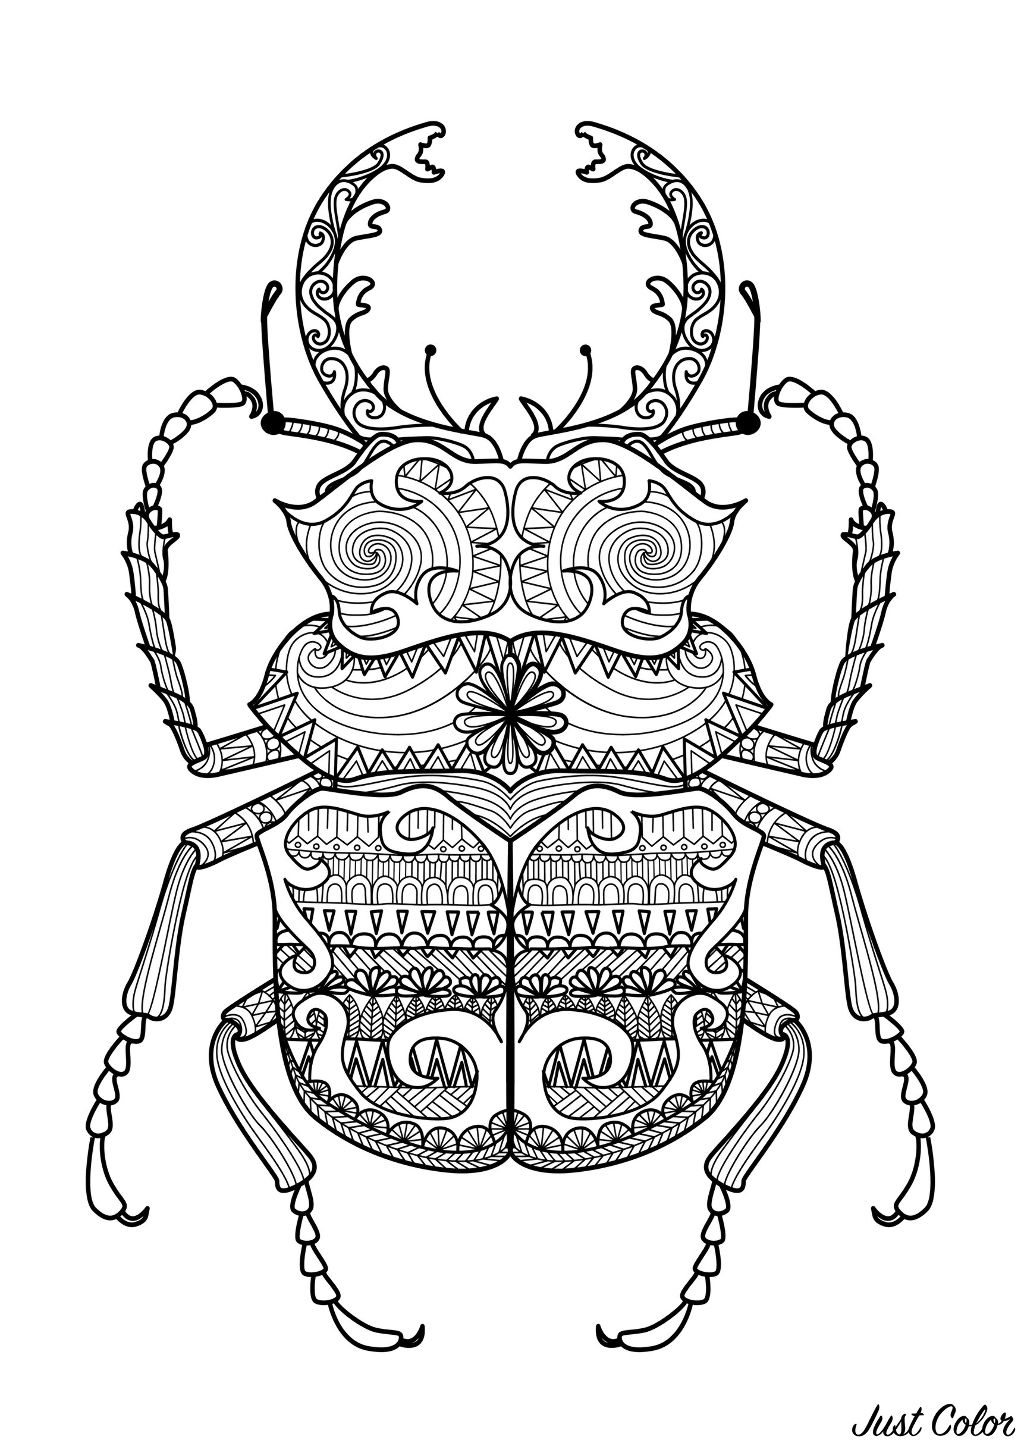 Incredible Beetle with extraordinary patterns